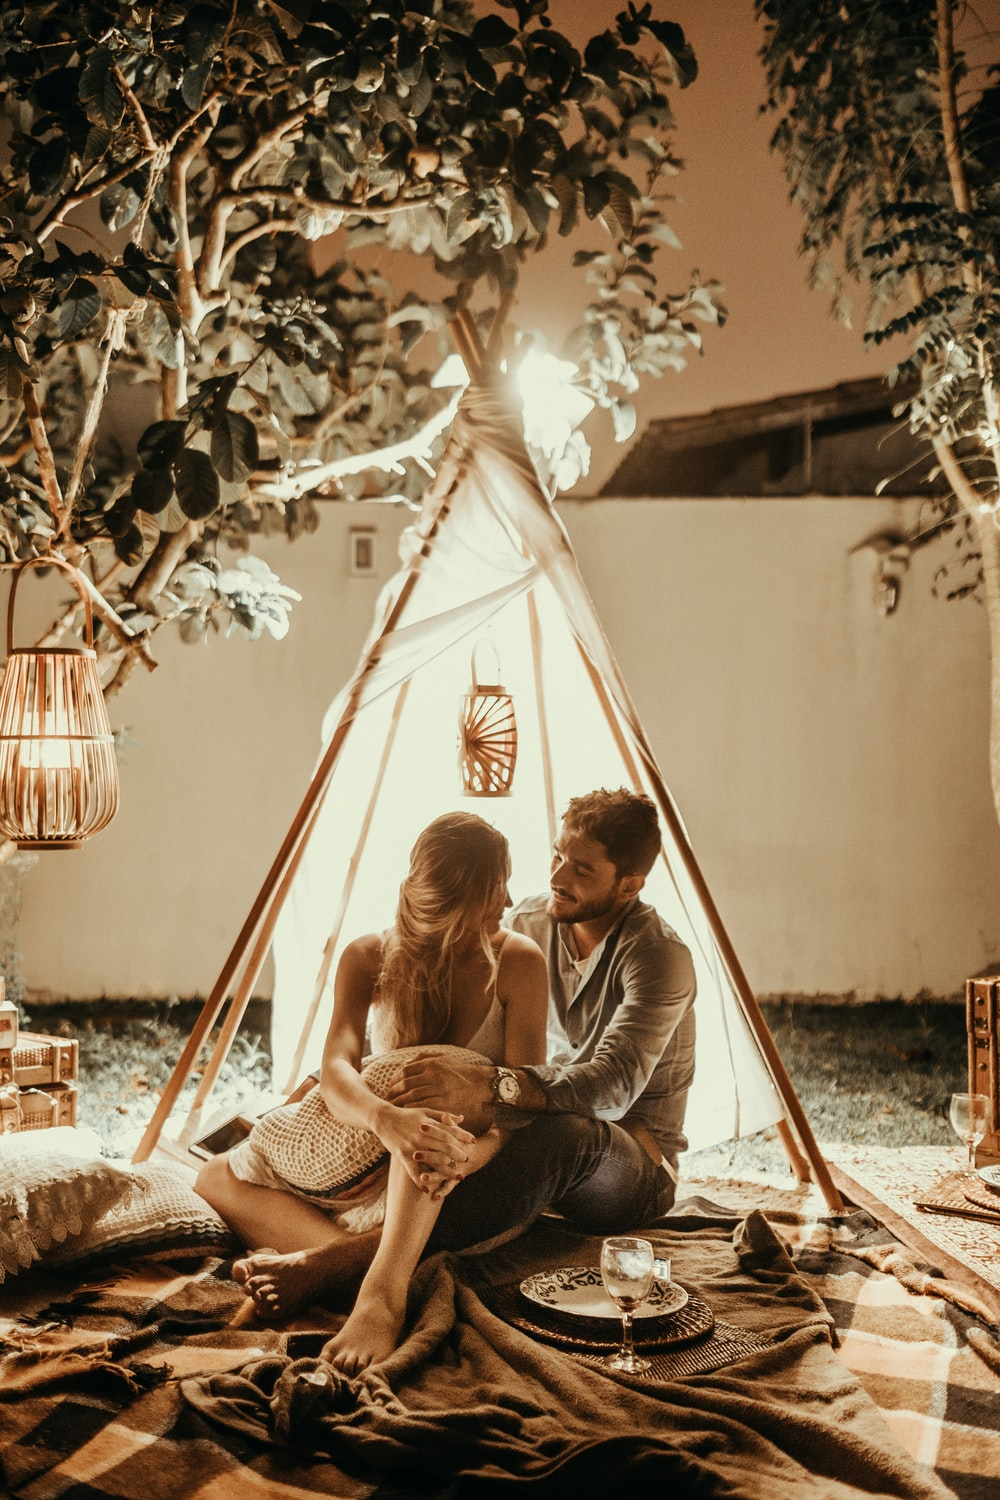 couple sitting inside tepee hut with lights